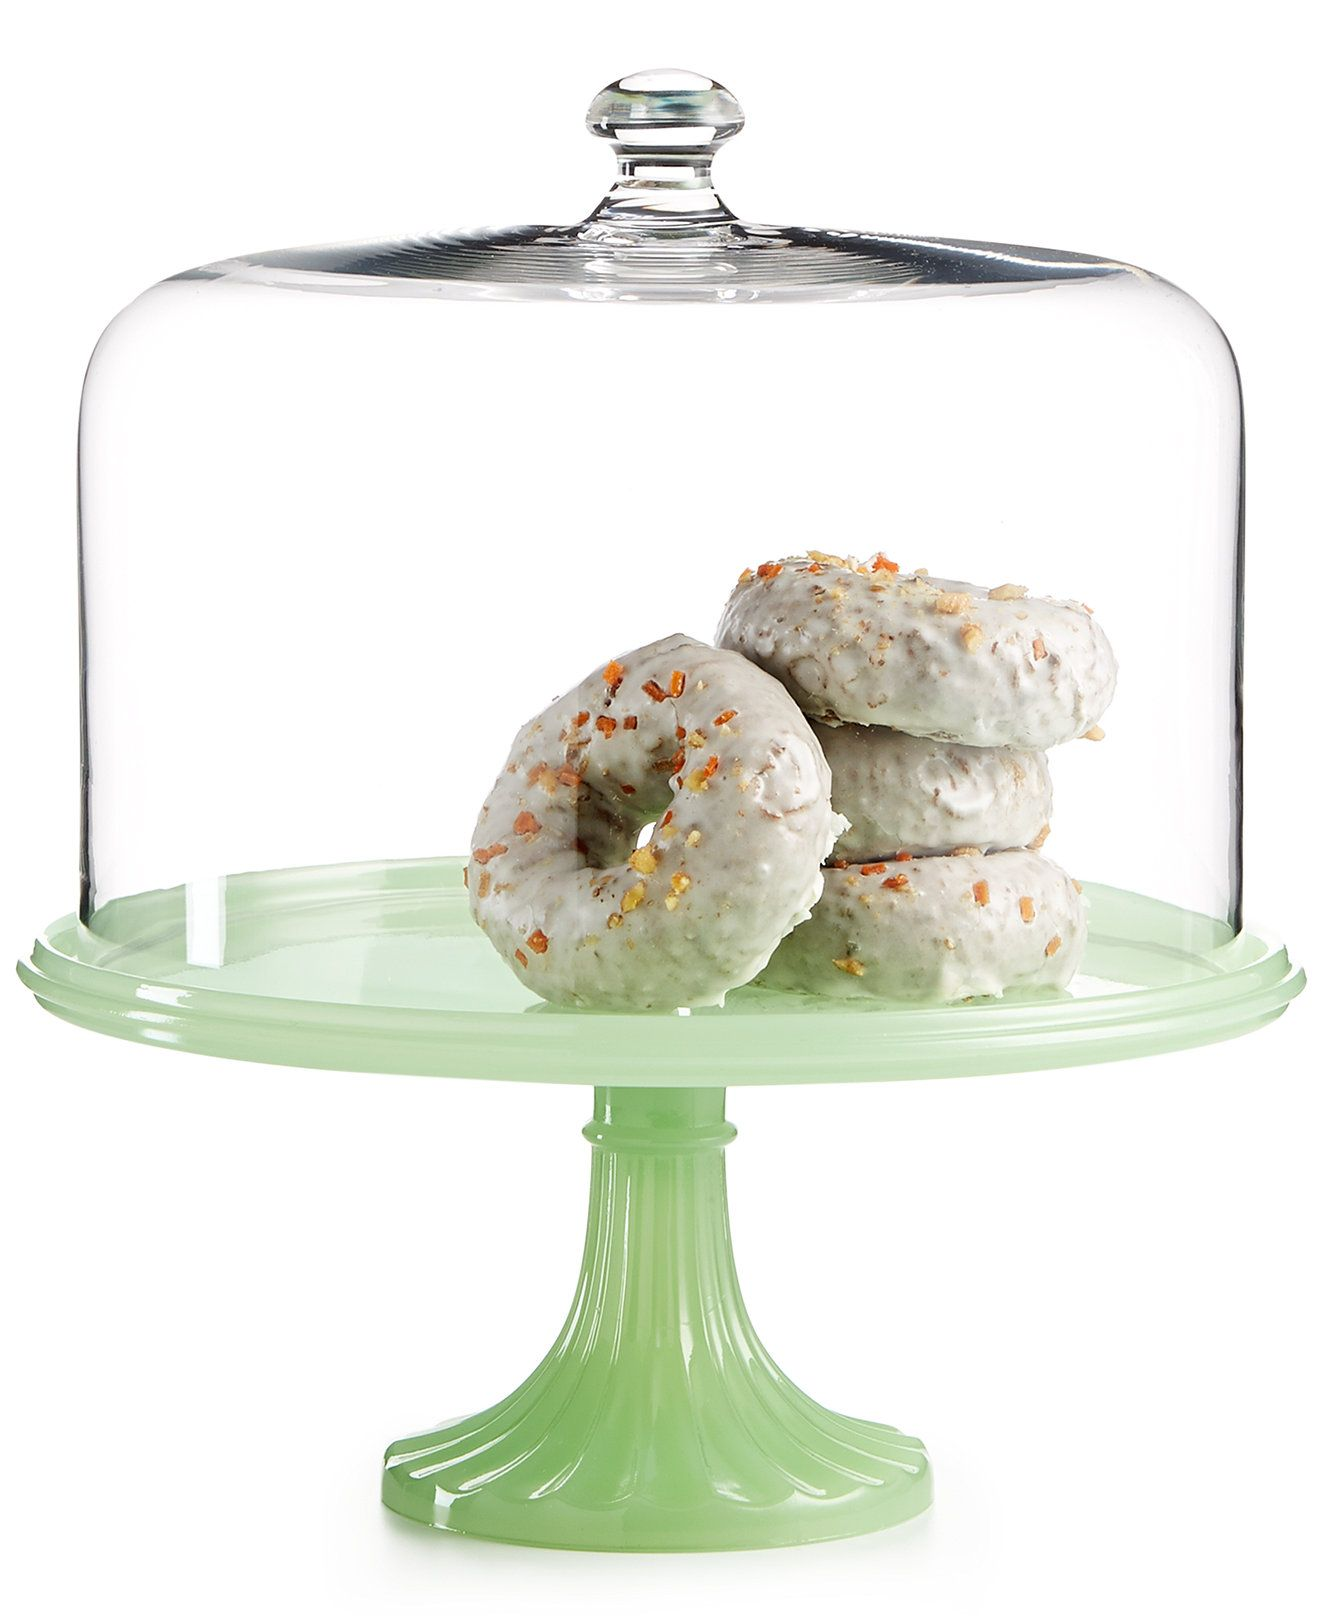 Cake Stand Dome Only